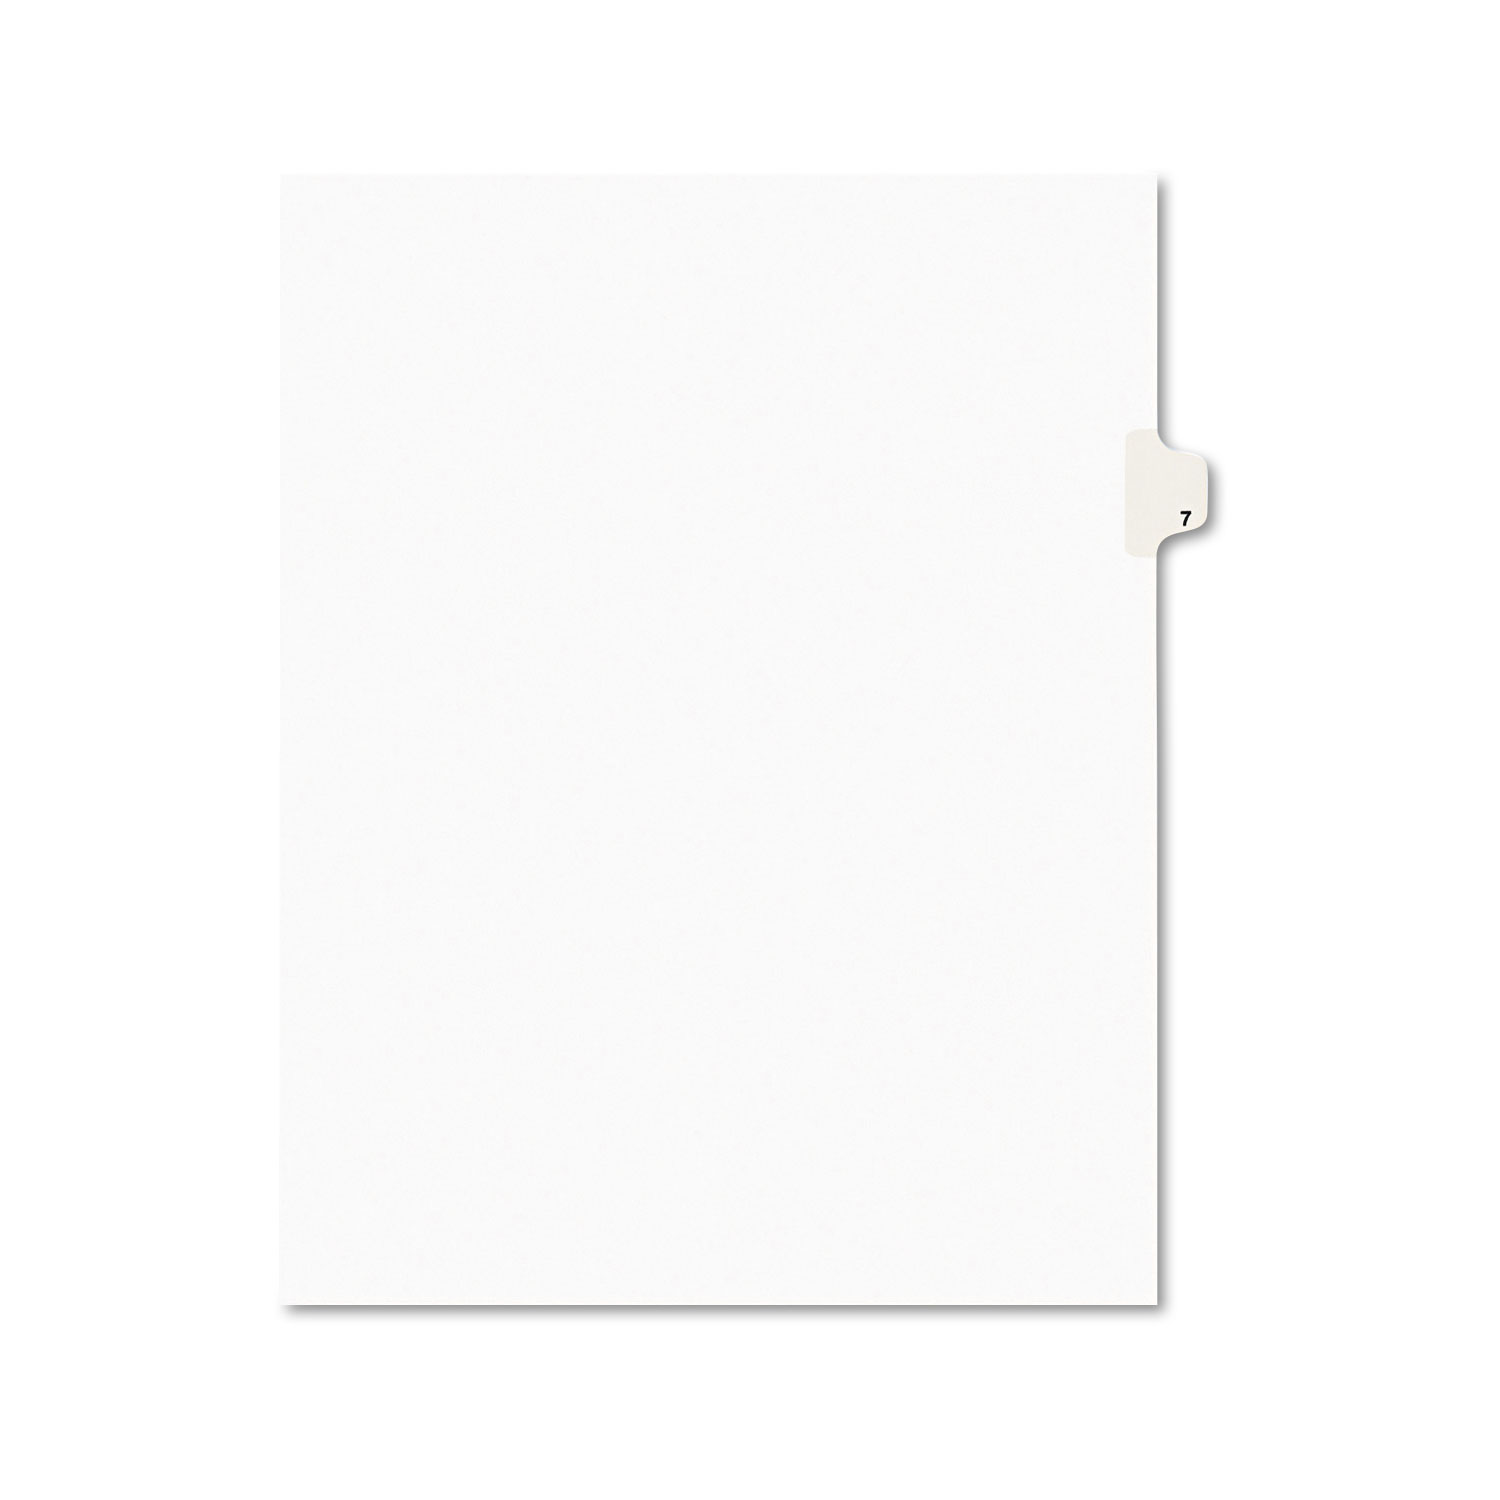 Preprinted Legal Exhibit Side Tab Index Dividers, Avery Style, 10-Tab, 7, 11 x 8.5, White, 25/Pack